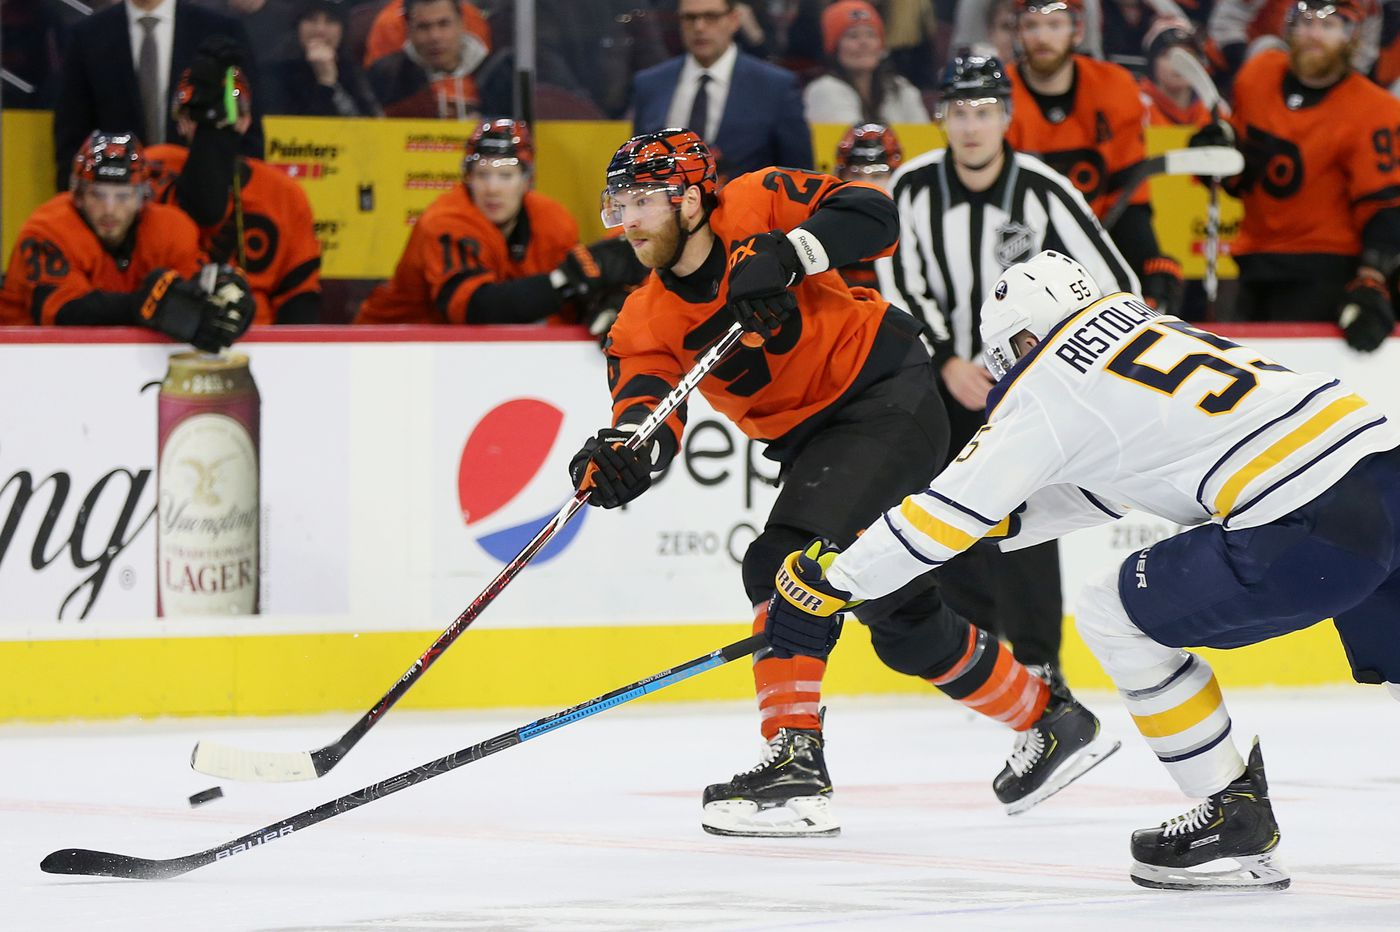 Flyers' offseason needs include vocal leaders, not just missing pieces   Sam Carchidi